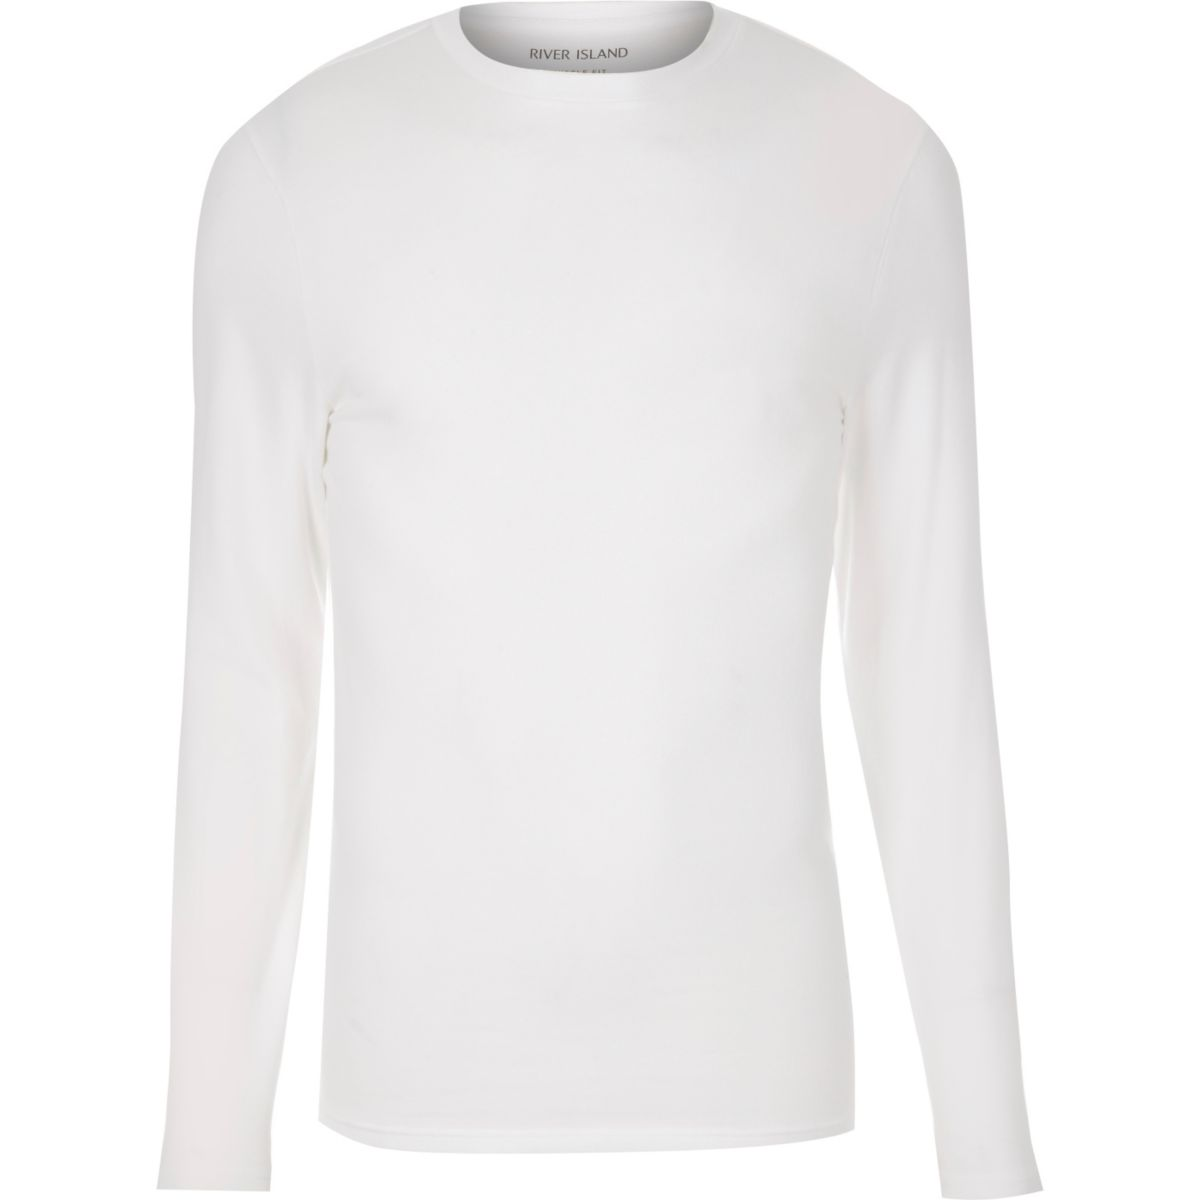 White muscle fit long sleeve t shirt t shirts vests Mens long sleeve white t shirt